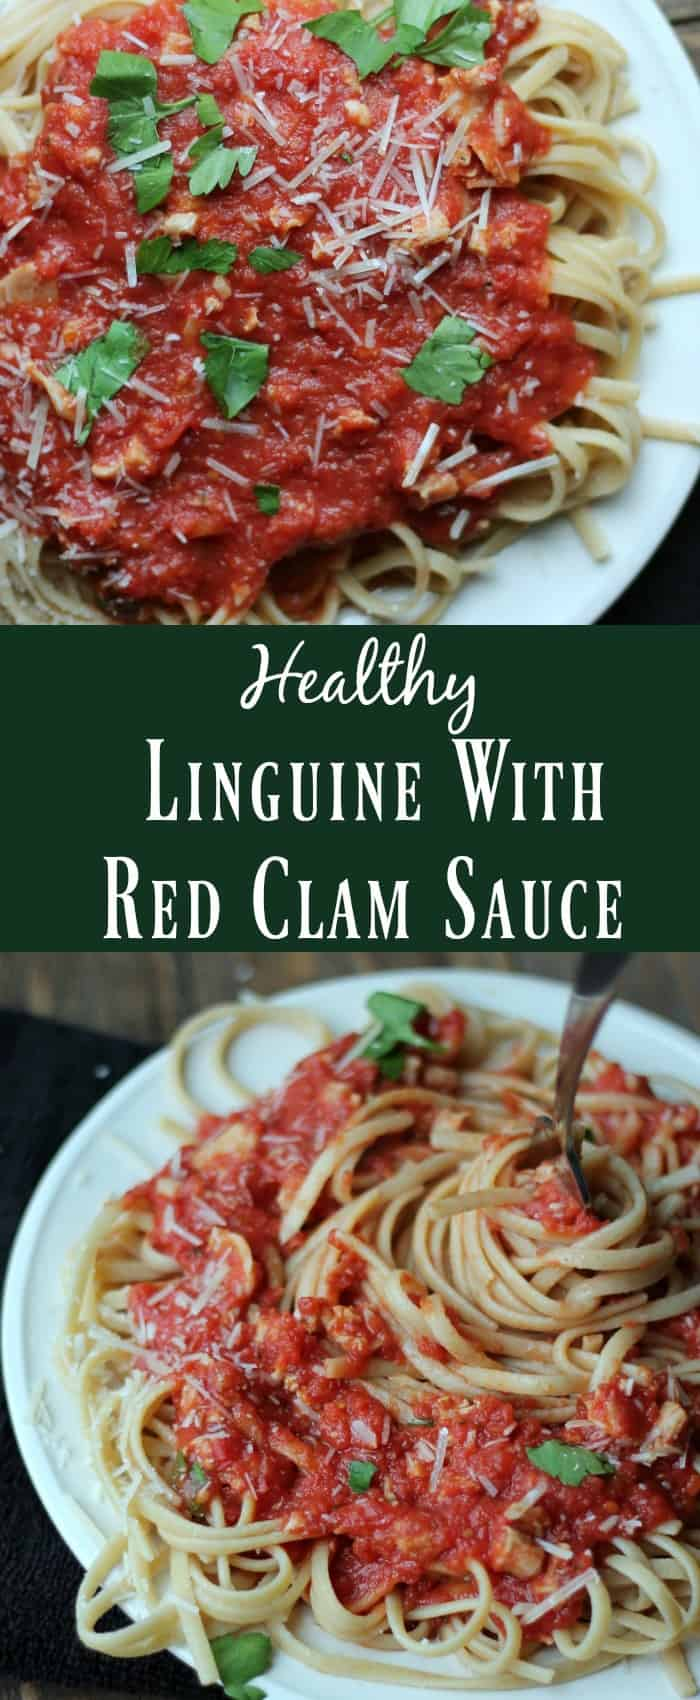 Healthy Linguine with red clam sauce. healthy pasta recipe